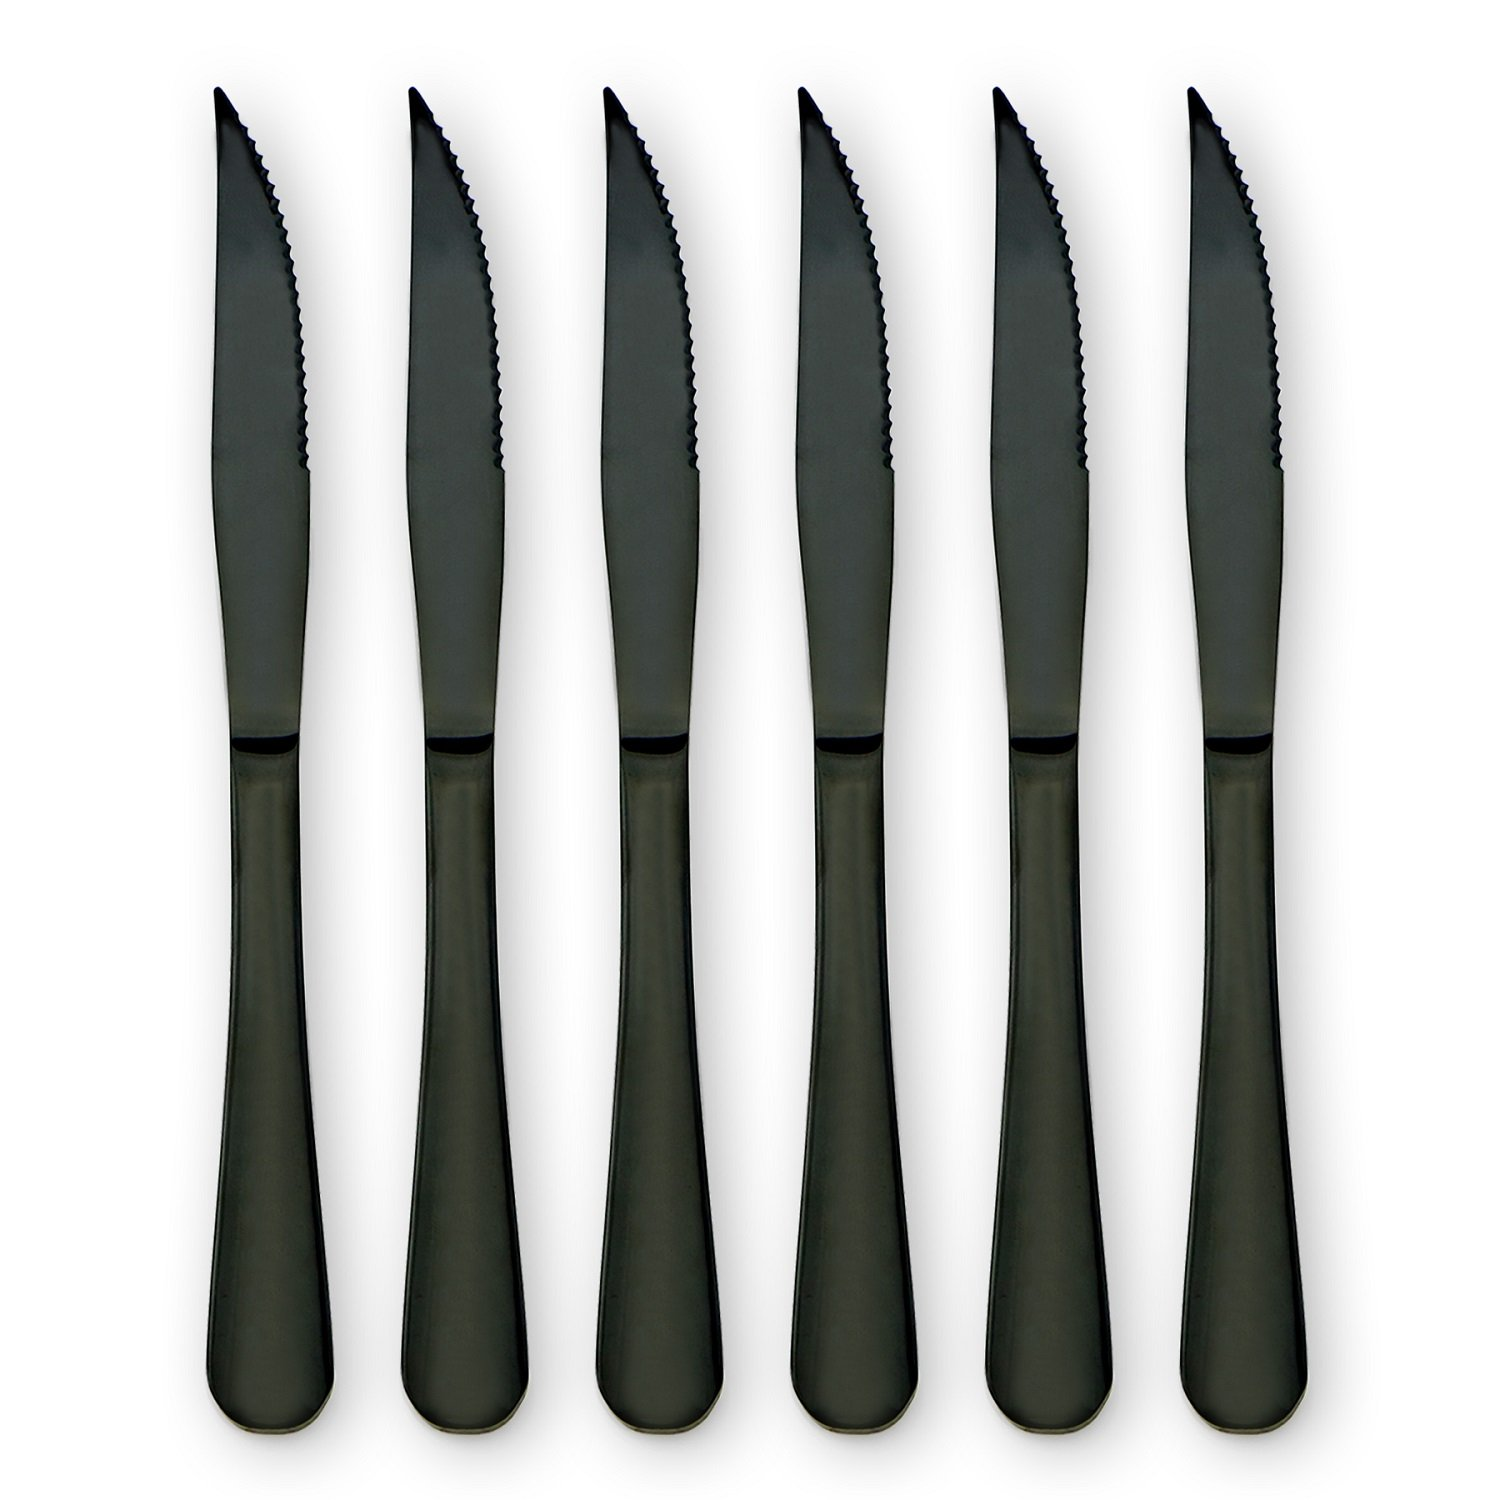 6-Pieces Stainless Steel Steak Knives Set-Use for Home Kitchen or Restaurant (Black)